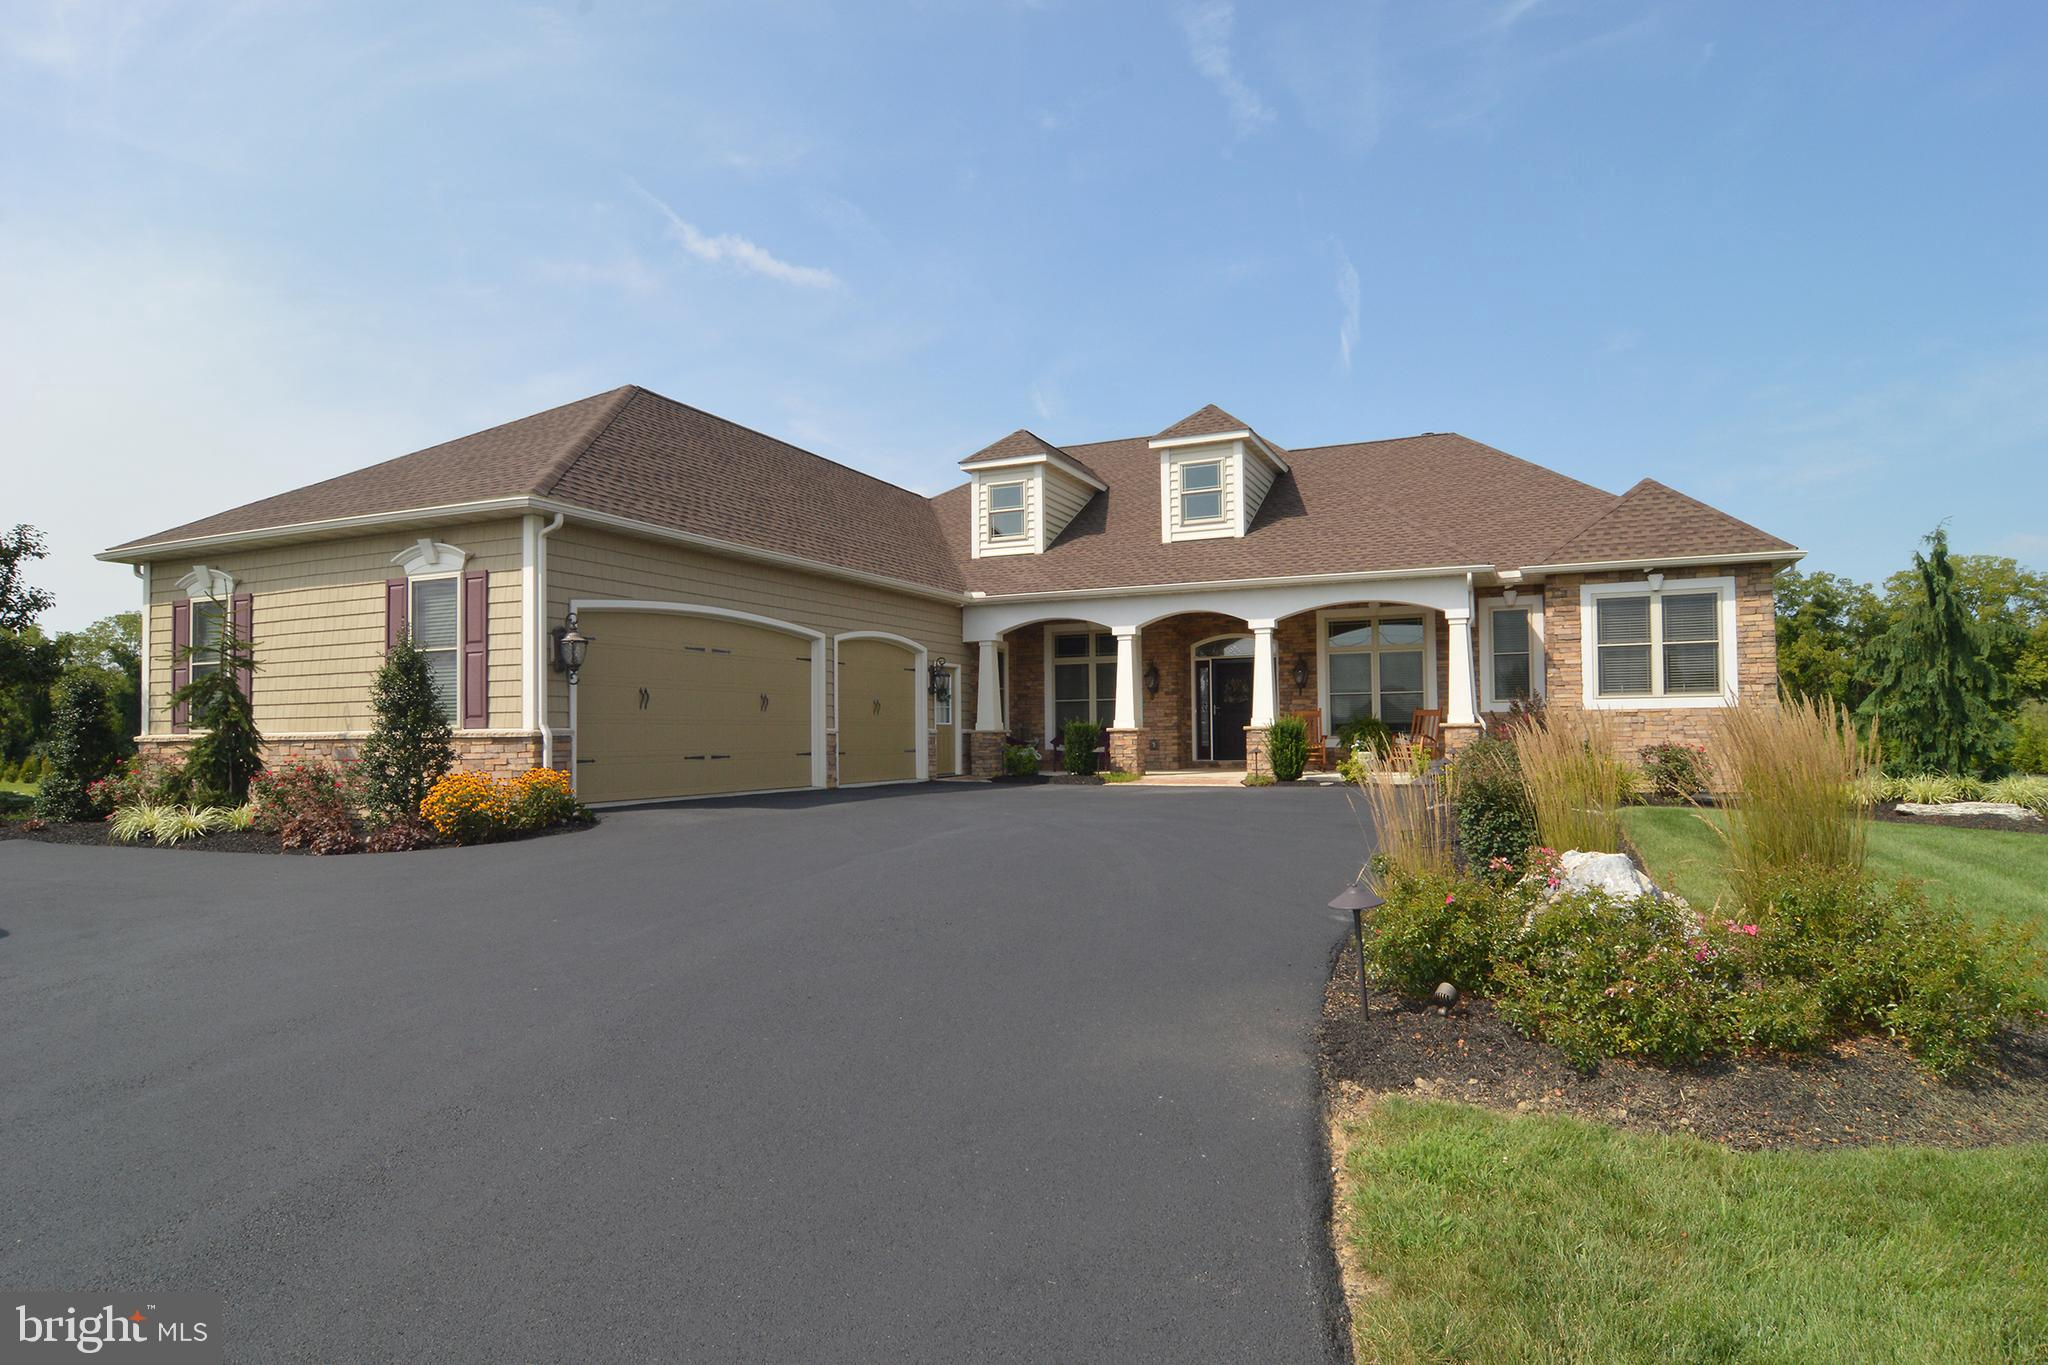 172 GAUL ROAD, READING, PA 19608